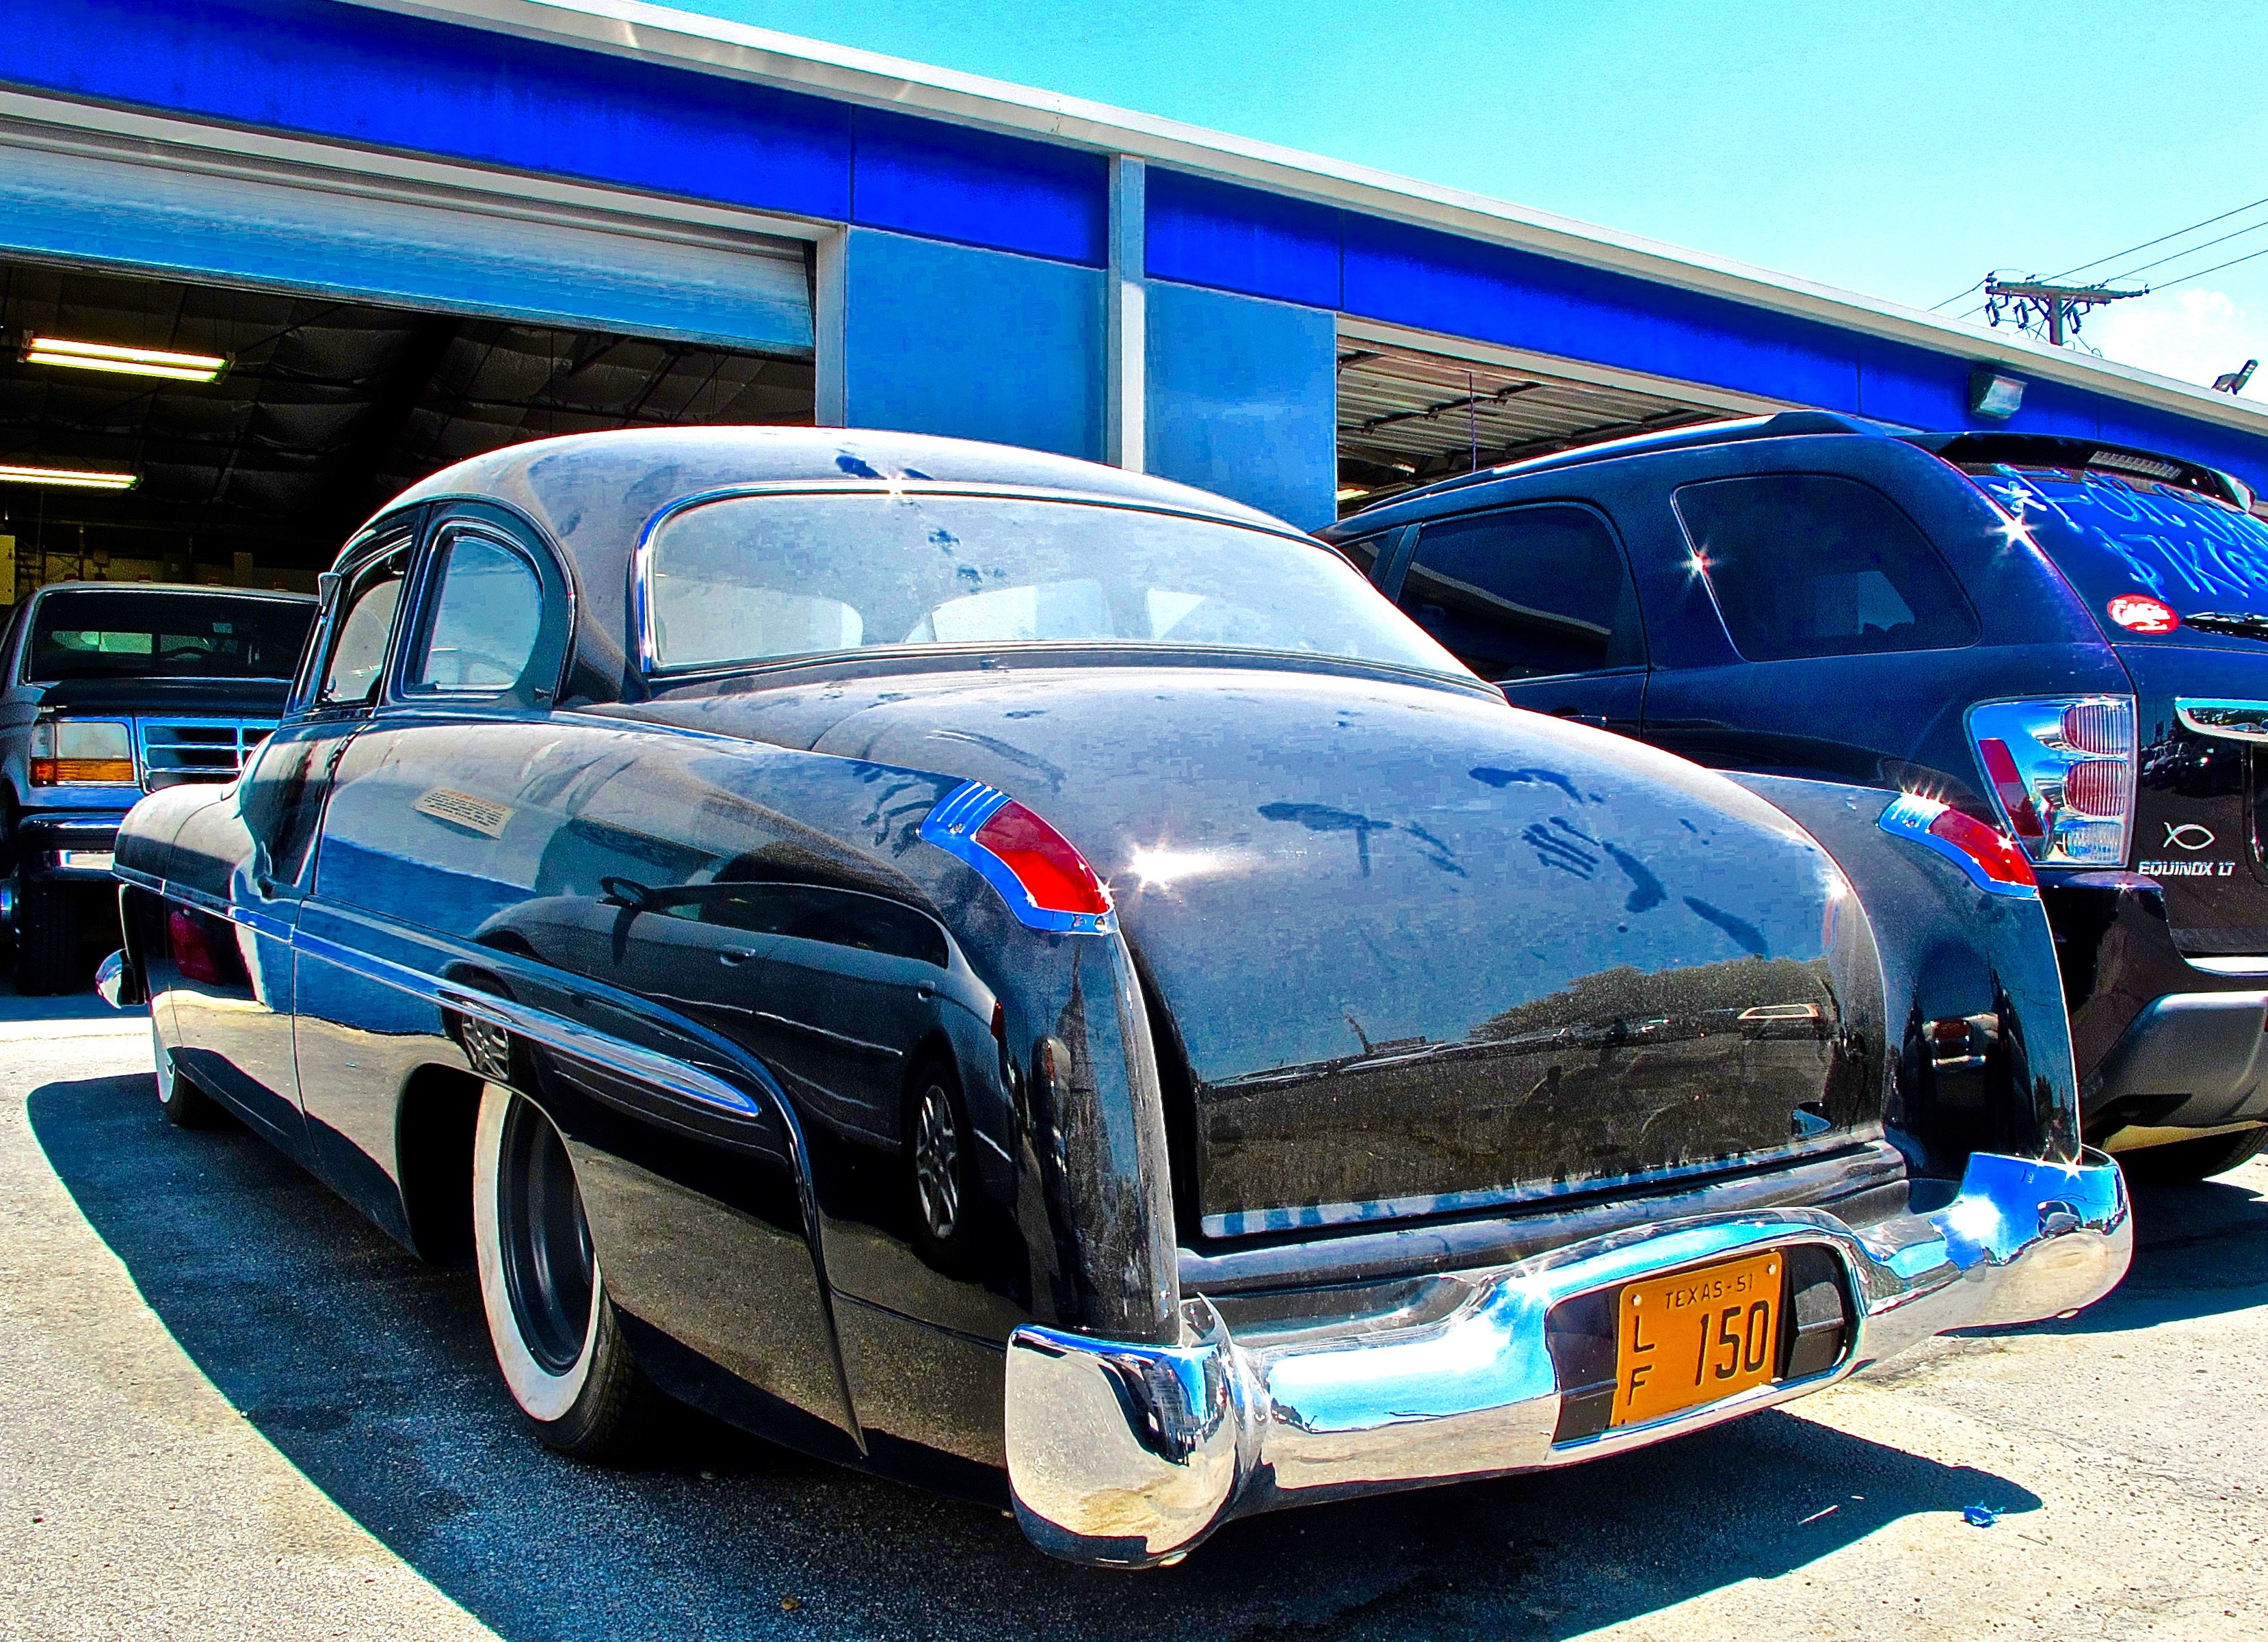 Mercury Atx Car Pictures Real Pics From Austin Tx Streets 1950 Tail Lights Front Bumper 1949 With Bags To Lift It Off The Road Seats Are A Lincoln Cosmopolitan Upholstered By Sean Johnston